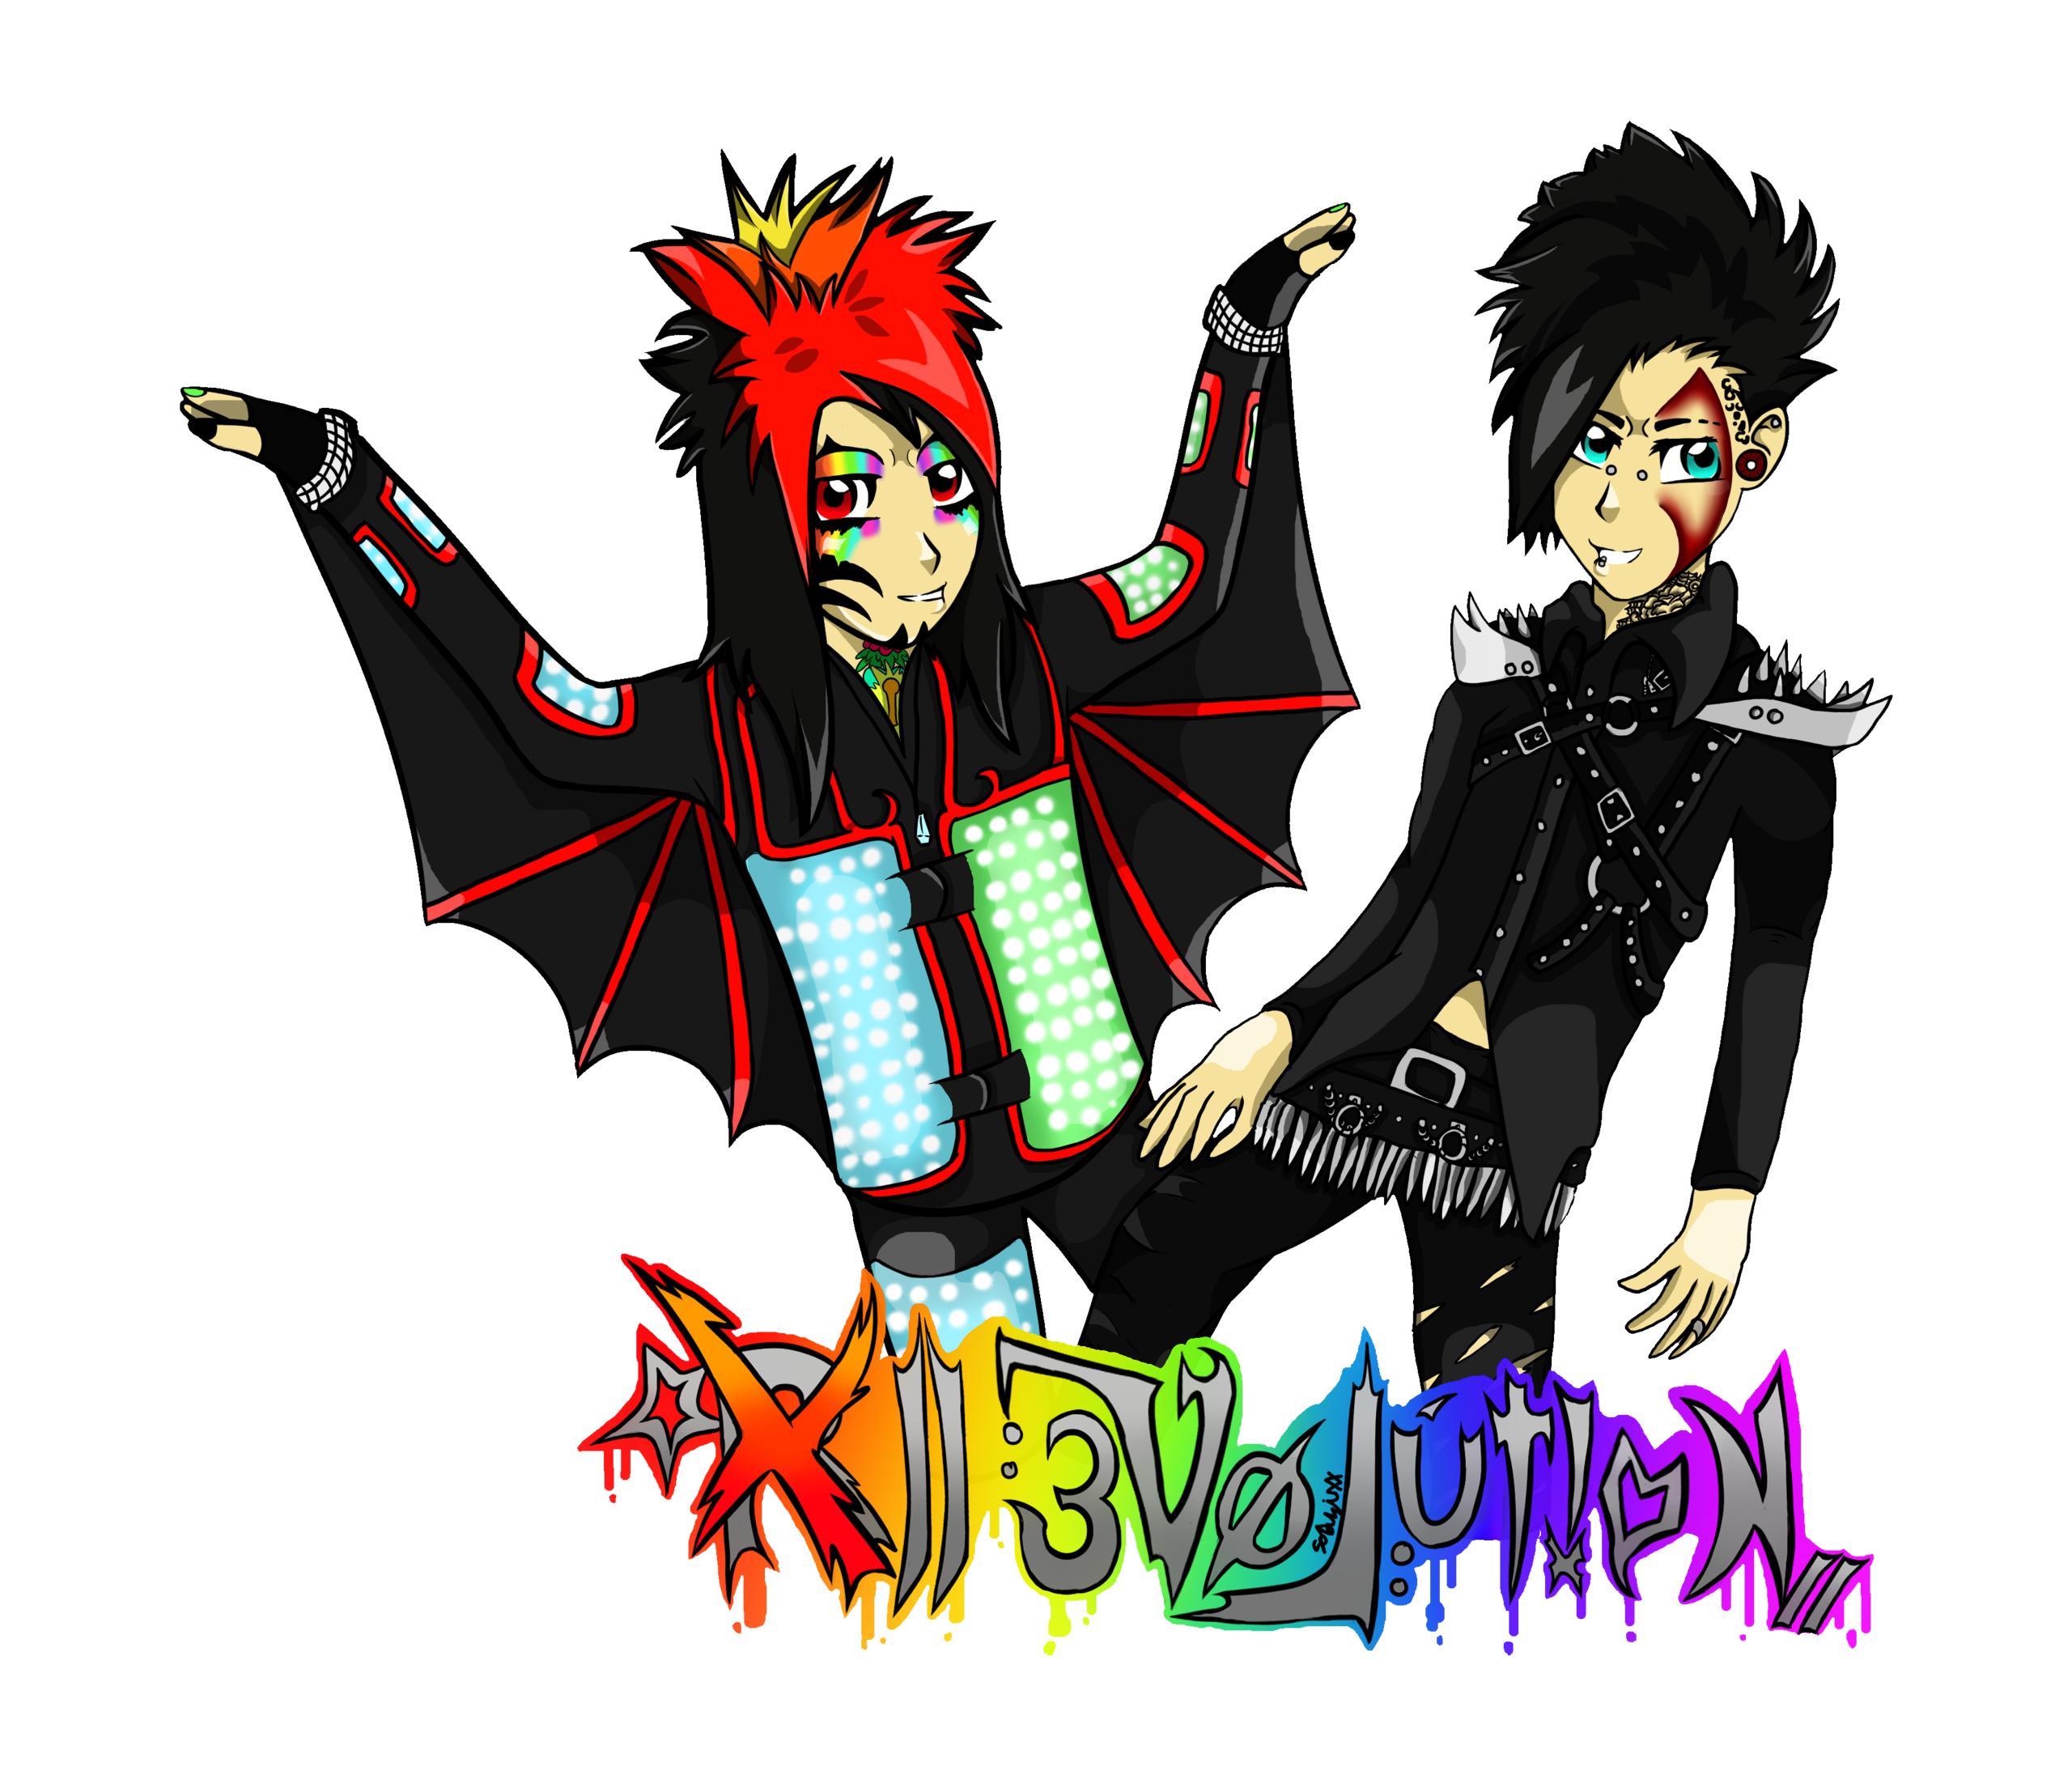 Botdf Images Botdf Evolution Hd Wallpaper And Background Photos 31498883